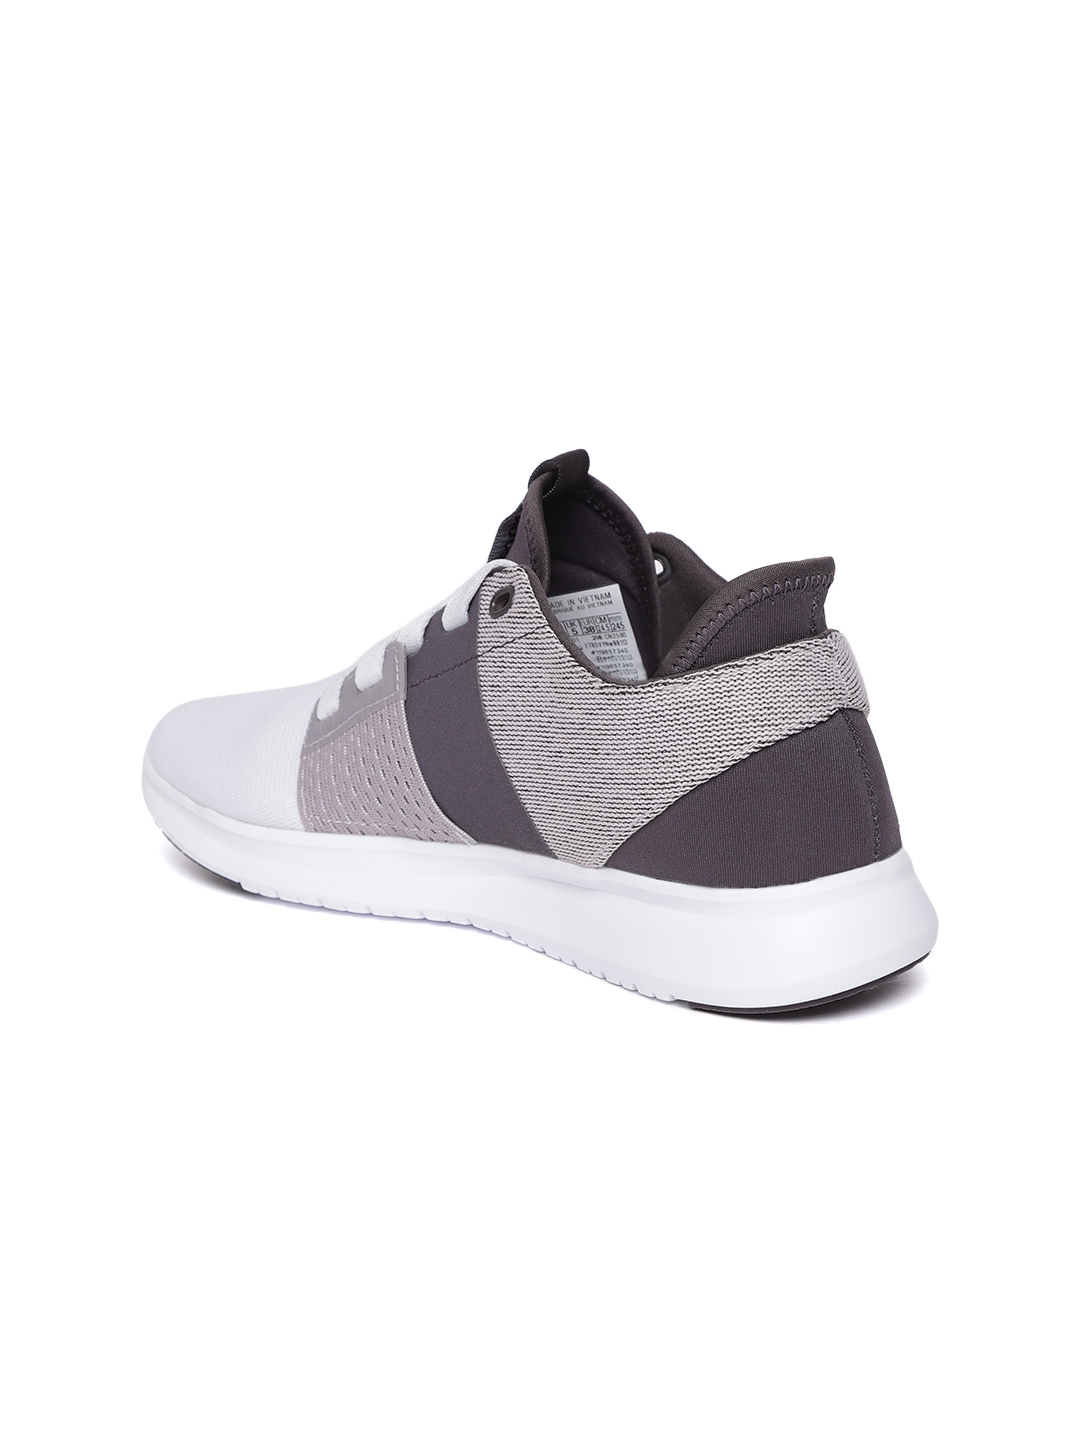 1e5b7964a Buy Reebok Women Off White   Purple Trilux Running Shoes - Sports ...